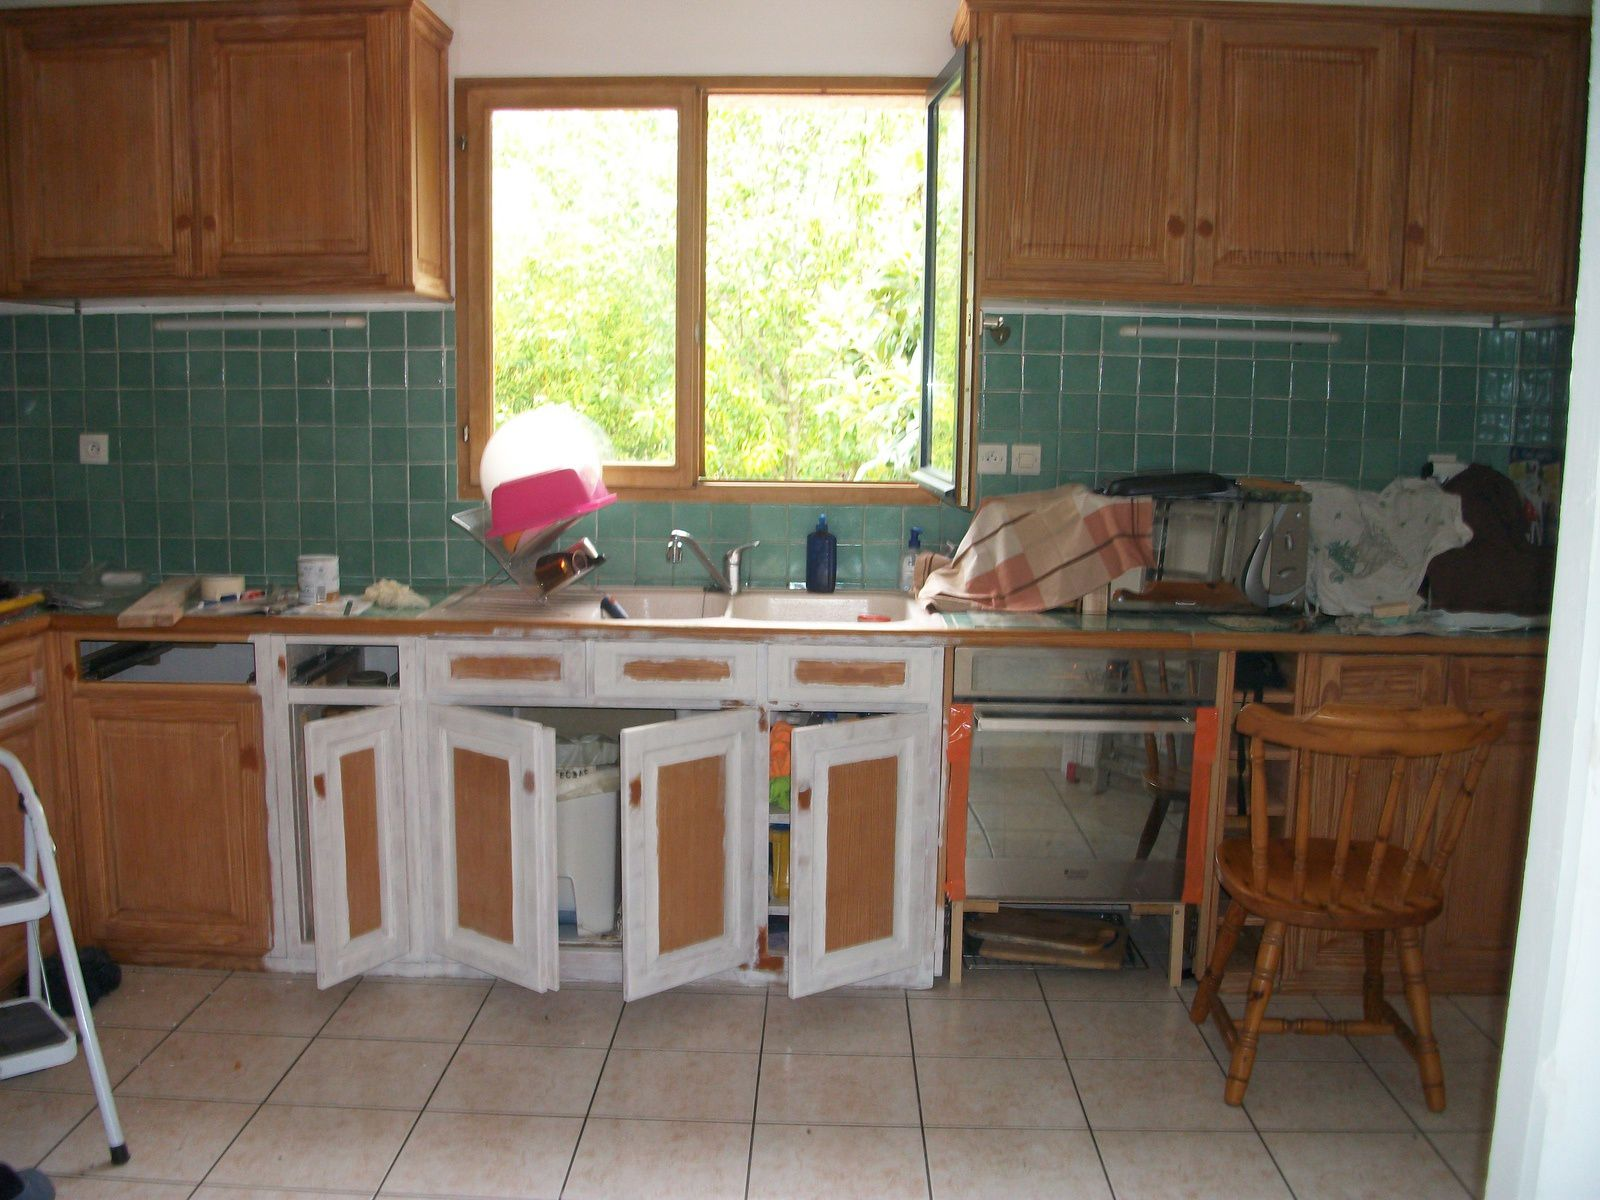 Relooking d 39 une cuisine avant apr s makeover of a kitchen for Relooking cuisine avant apres